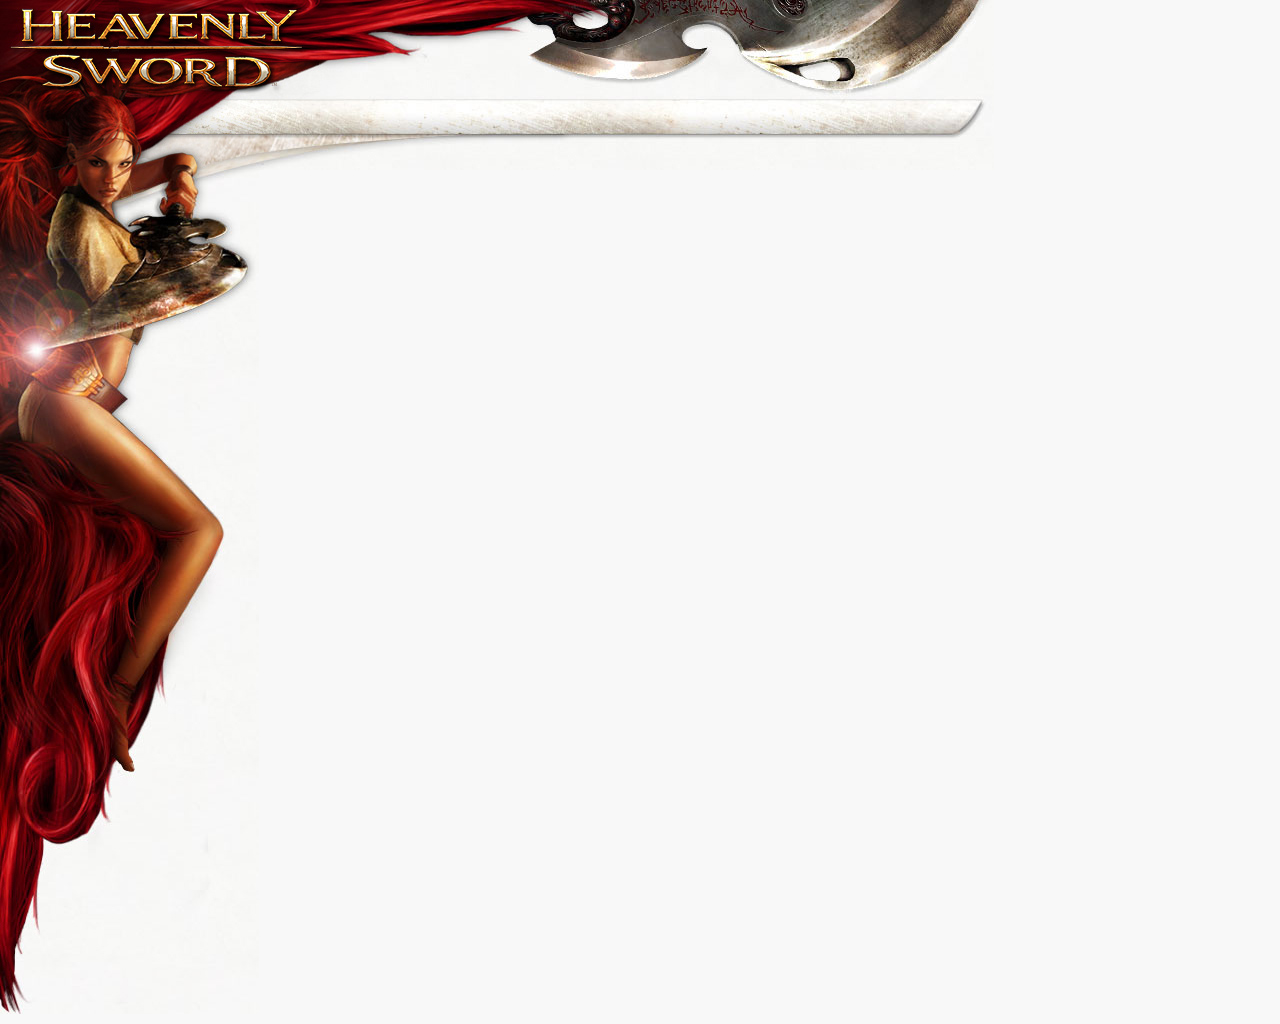 Heavenly Sword - Playstation 3 Review | Chalgyr's Game Room